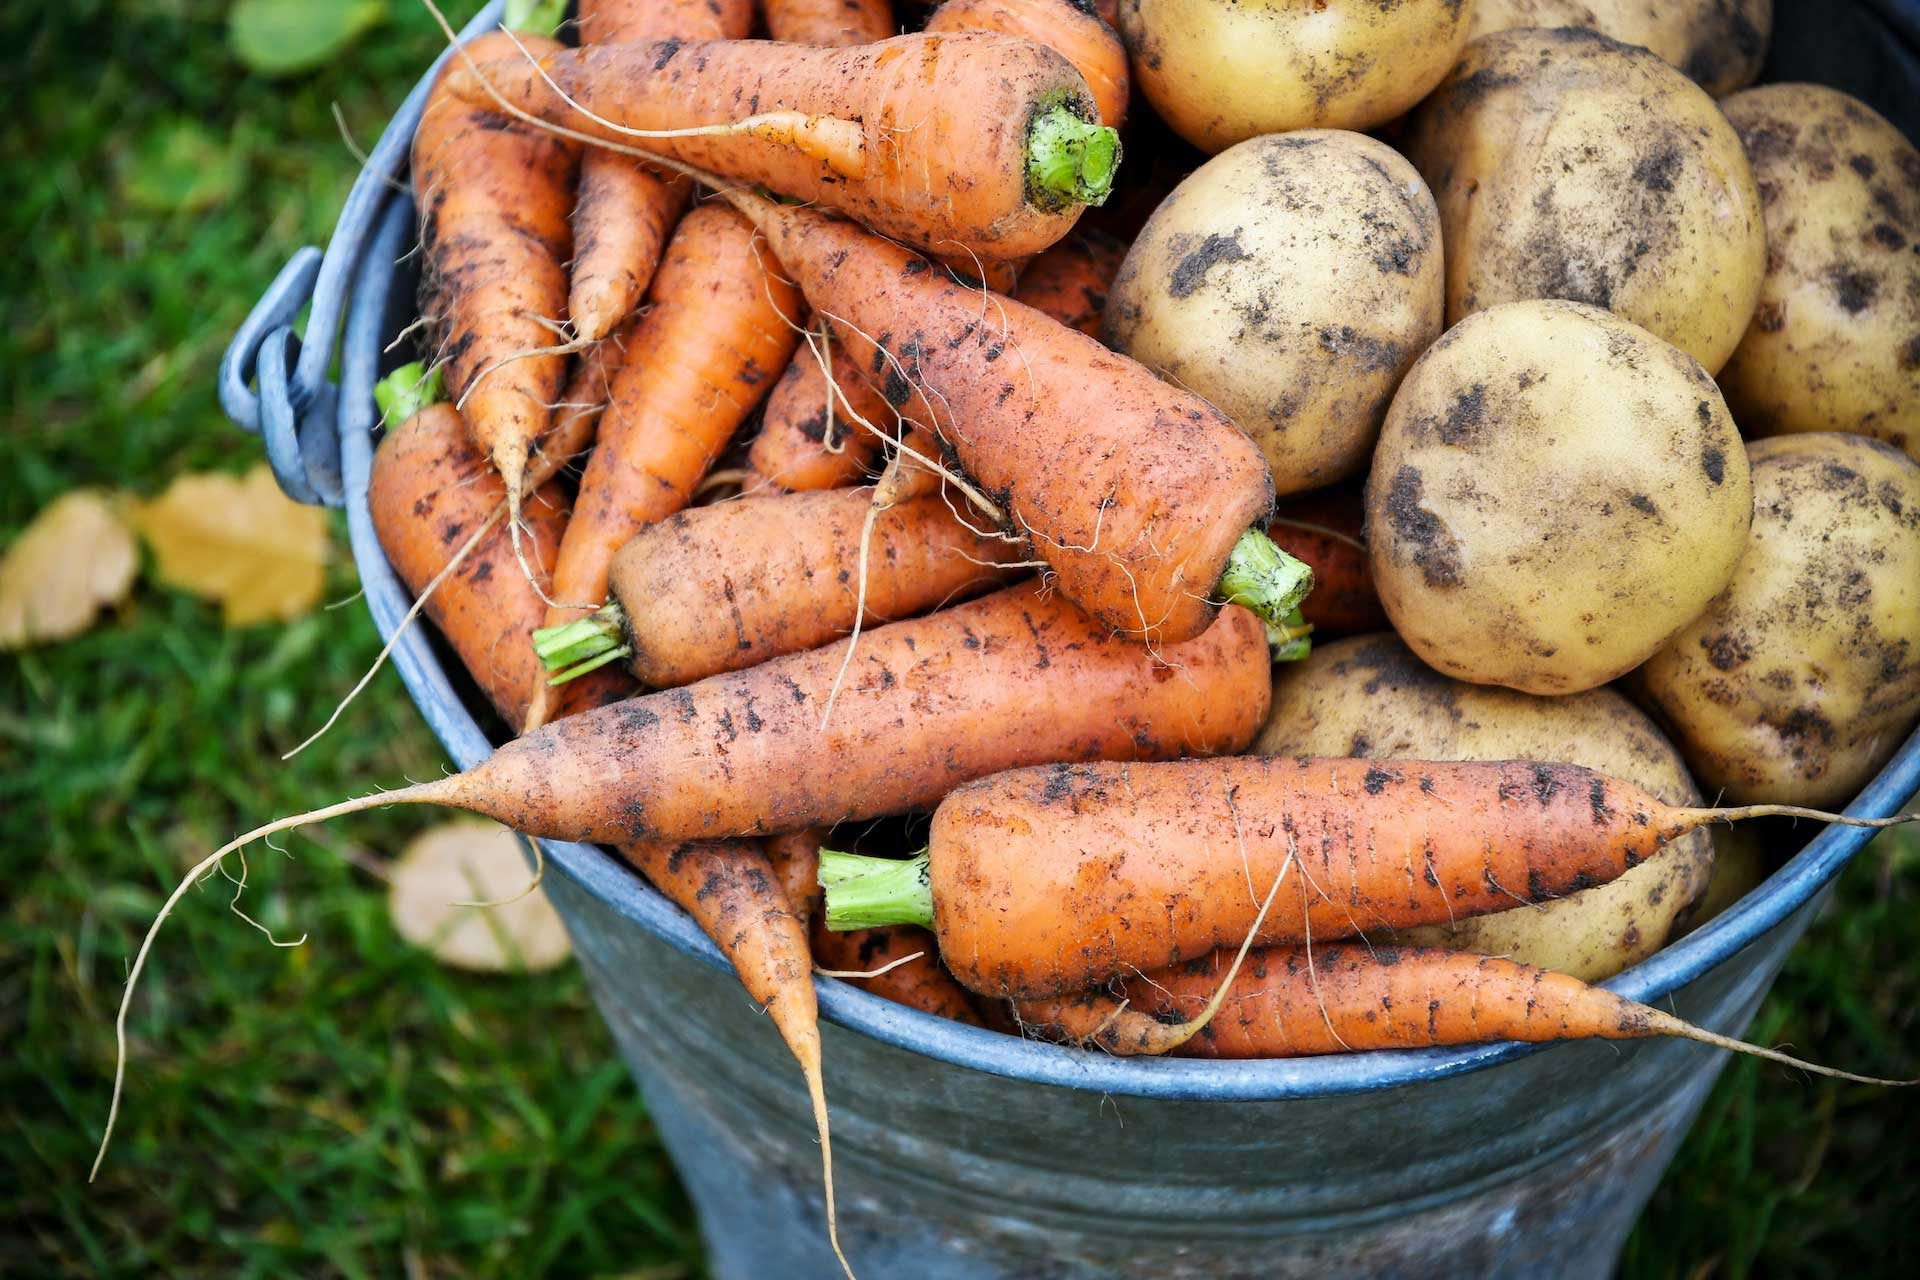 fresh carrot and potato harvest in a tin bucket.